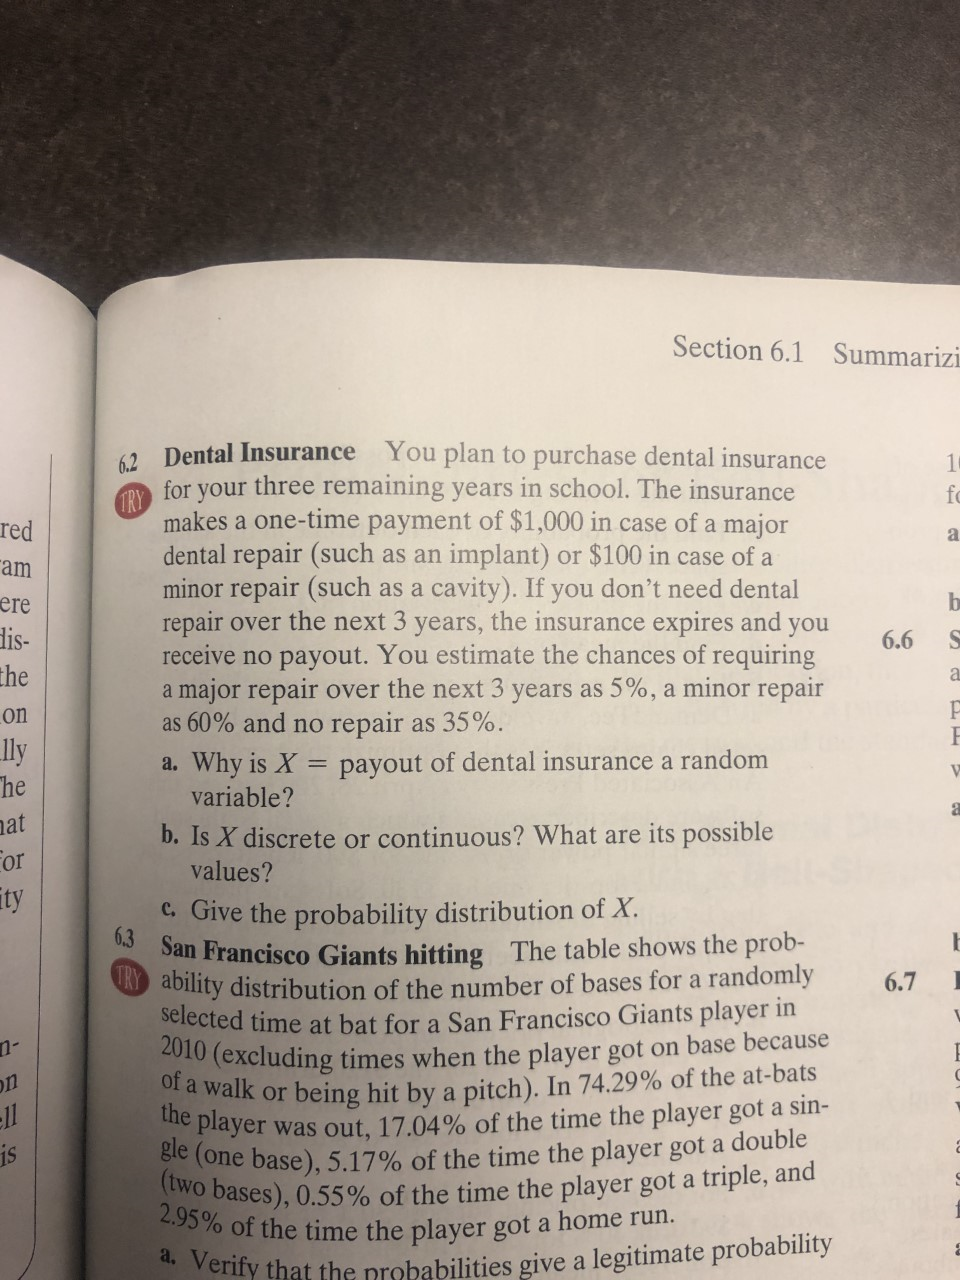 Section 6.1 Summarizi 62 Dental Insurance You plan to purchase dental insurance for your three remaining years in school. The insurance 1 fo TRY makes a one-time payment of $1,000 in case of a major dental repair (such as an implant) or $100 in case of a minor repair (such as a cavity). If you don't need dental repair over the next 3 years, the insurance expires and you receive no payout. You estimate the chances of requiring a major repair over the next 3 years as 5%, a minor repair as 60% and no repair as 35%. red a am b ere dis- the 6.6 on ly he a. Why is X = payout of dental insurancea random variable? at b. Is X discrete or continuous? What are its possible values? For ty c.Give the probability distribution of X 6.3 San Francisco Giants hitting The table shows the prob- ability distribution of the number of bases for a randomly selected time at bat for a San Francisco Giants player in 2010 (excluding times when the player got on base because of a walk or being hit by a pitch). In 74.29% of the at-bats 6.7 on was out, 17.04% of the time the player got a sin- gle (one base), 5.17% of the time the player got a double (two bases), 0.55 % of the time the player got a triple, and 2.95% of the time the player got a home run. the player ll is d Verify that the probabilities give a legitimate probability